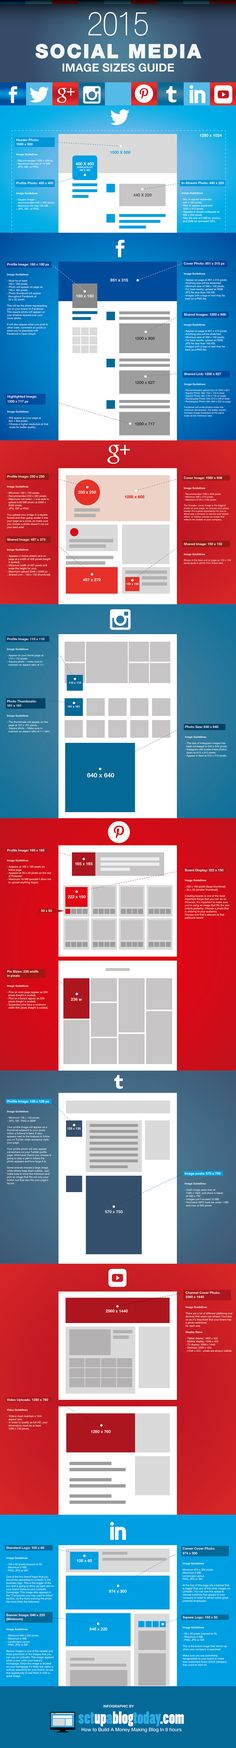 From Facebook to Google+, this #socialmedia image size guide gives you the exact dimensions for the top 8 social networks! PLUS best practices and strategies. via http://rebekahradice.com/social-media-image-sizes/ via @RebekahRadice